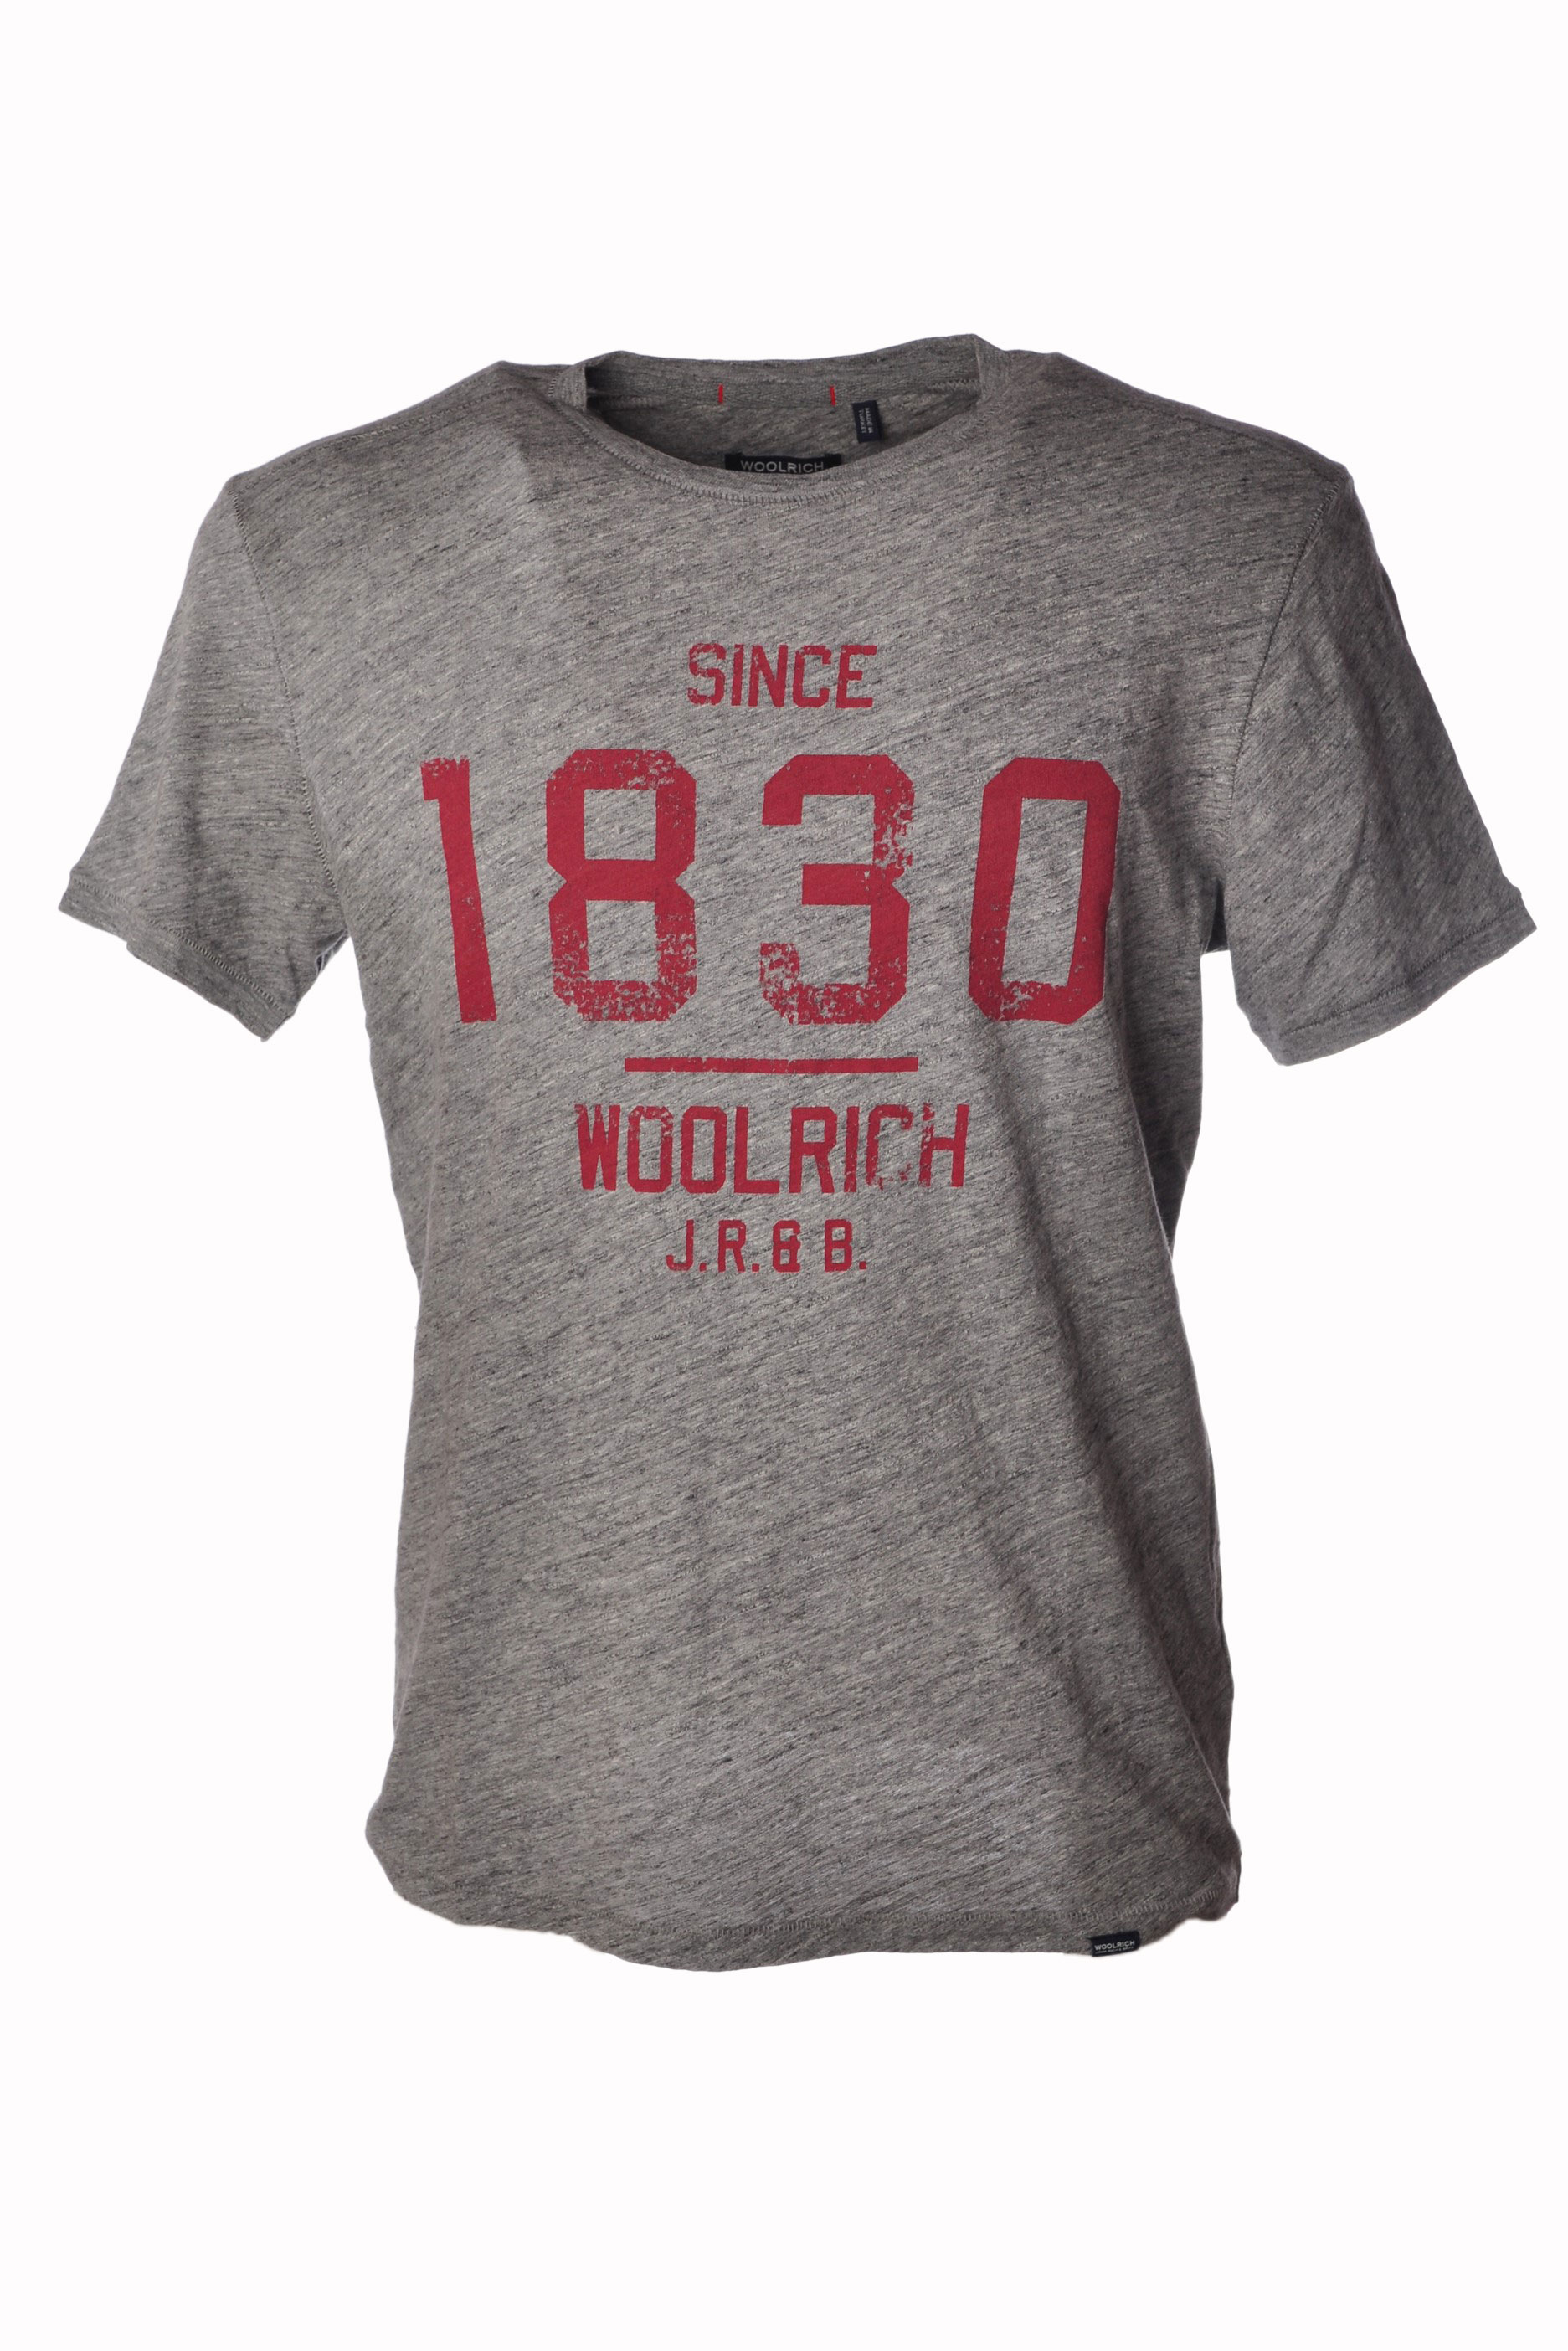 Woolrich  -  T - Male - Grey - 3555923A181338